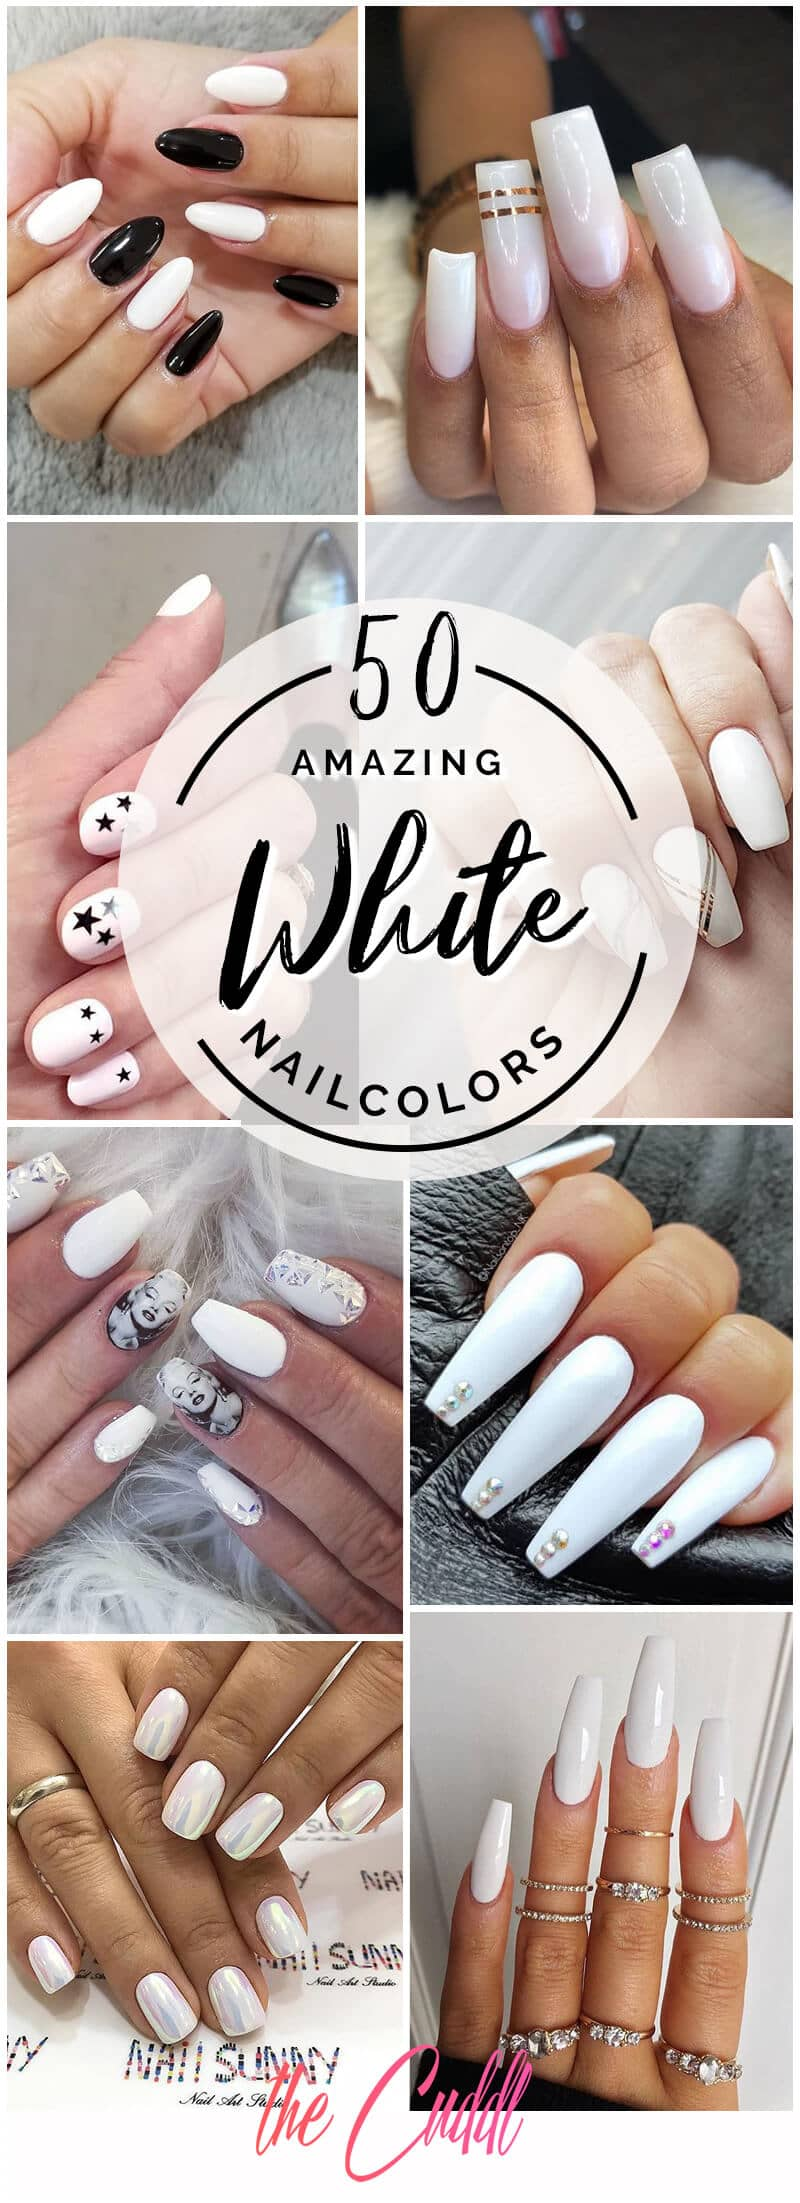 50 Fun and Fashionable White Nail Designs for Any Occasion